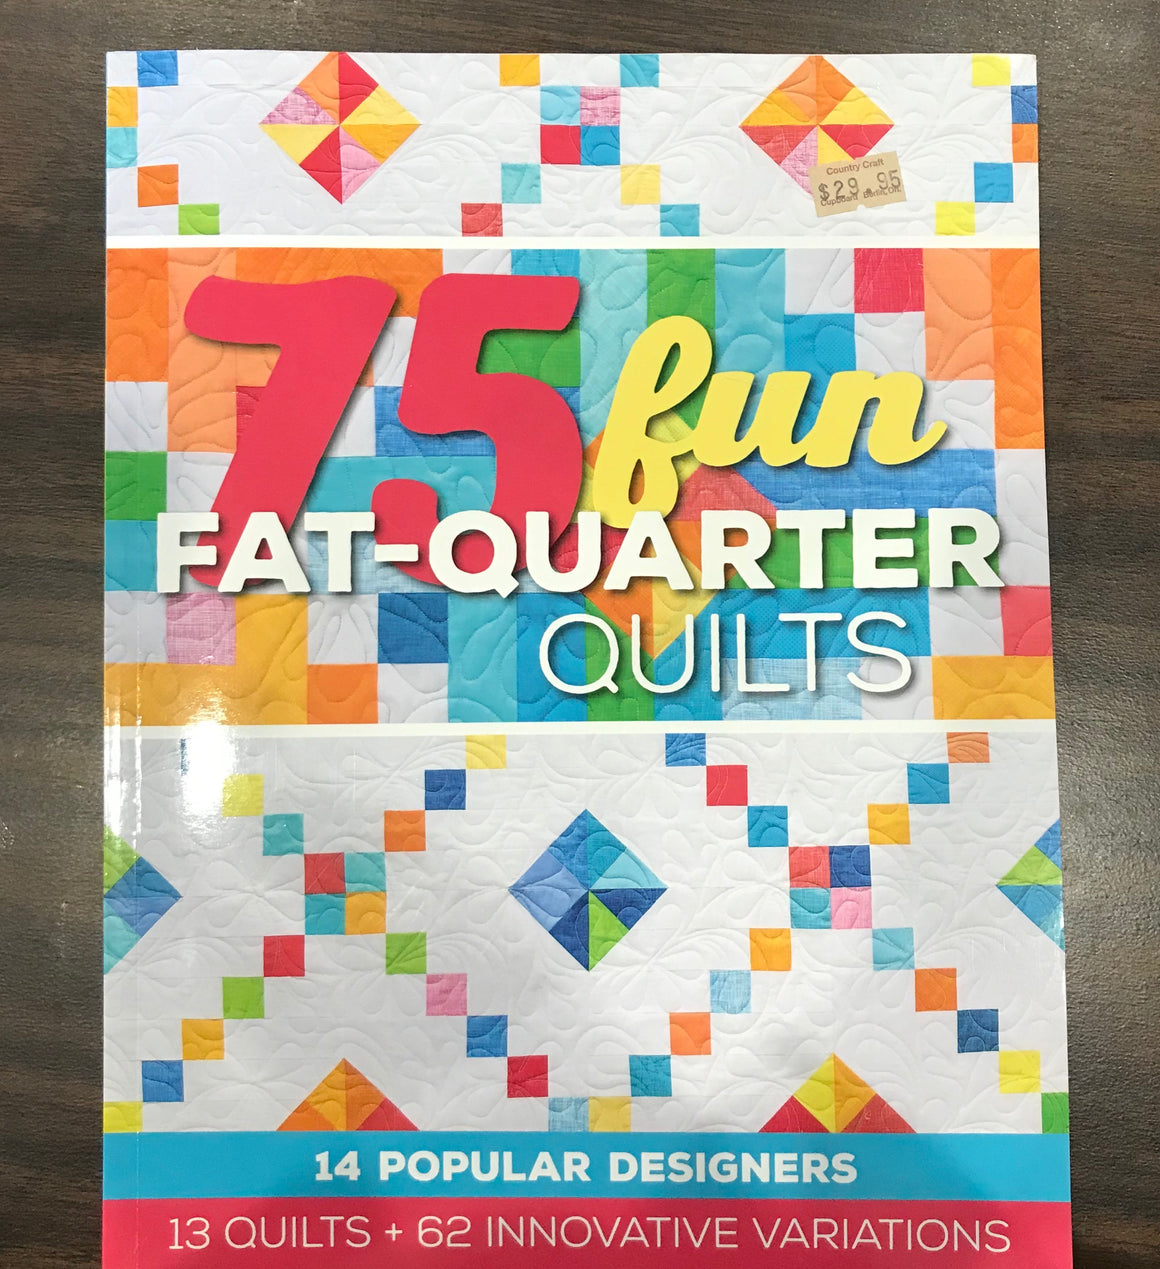 75 Fun Fat-Quarter Quilts